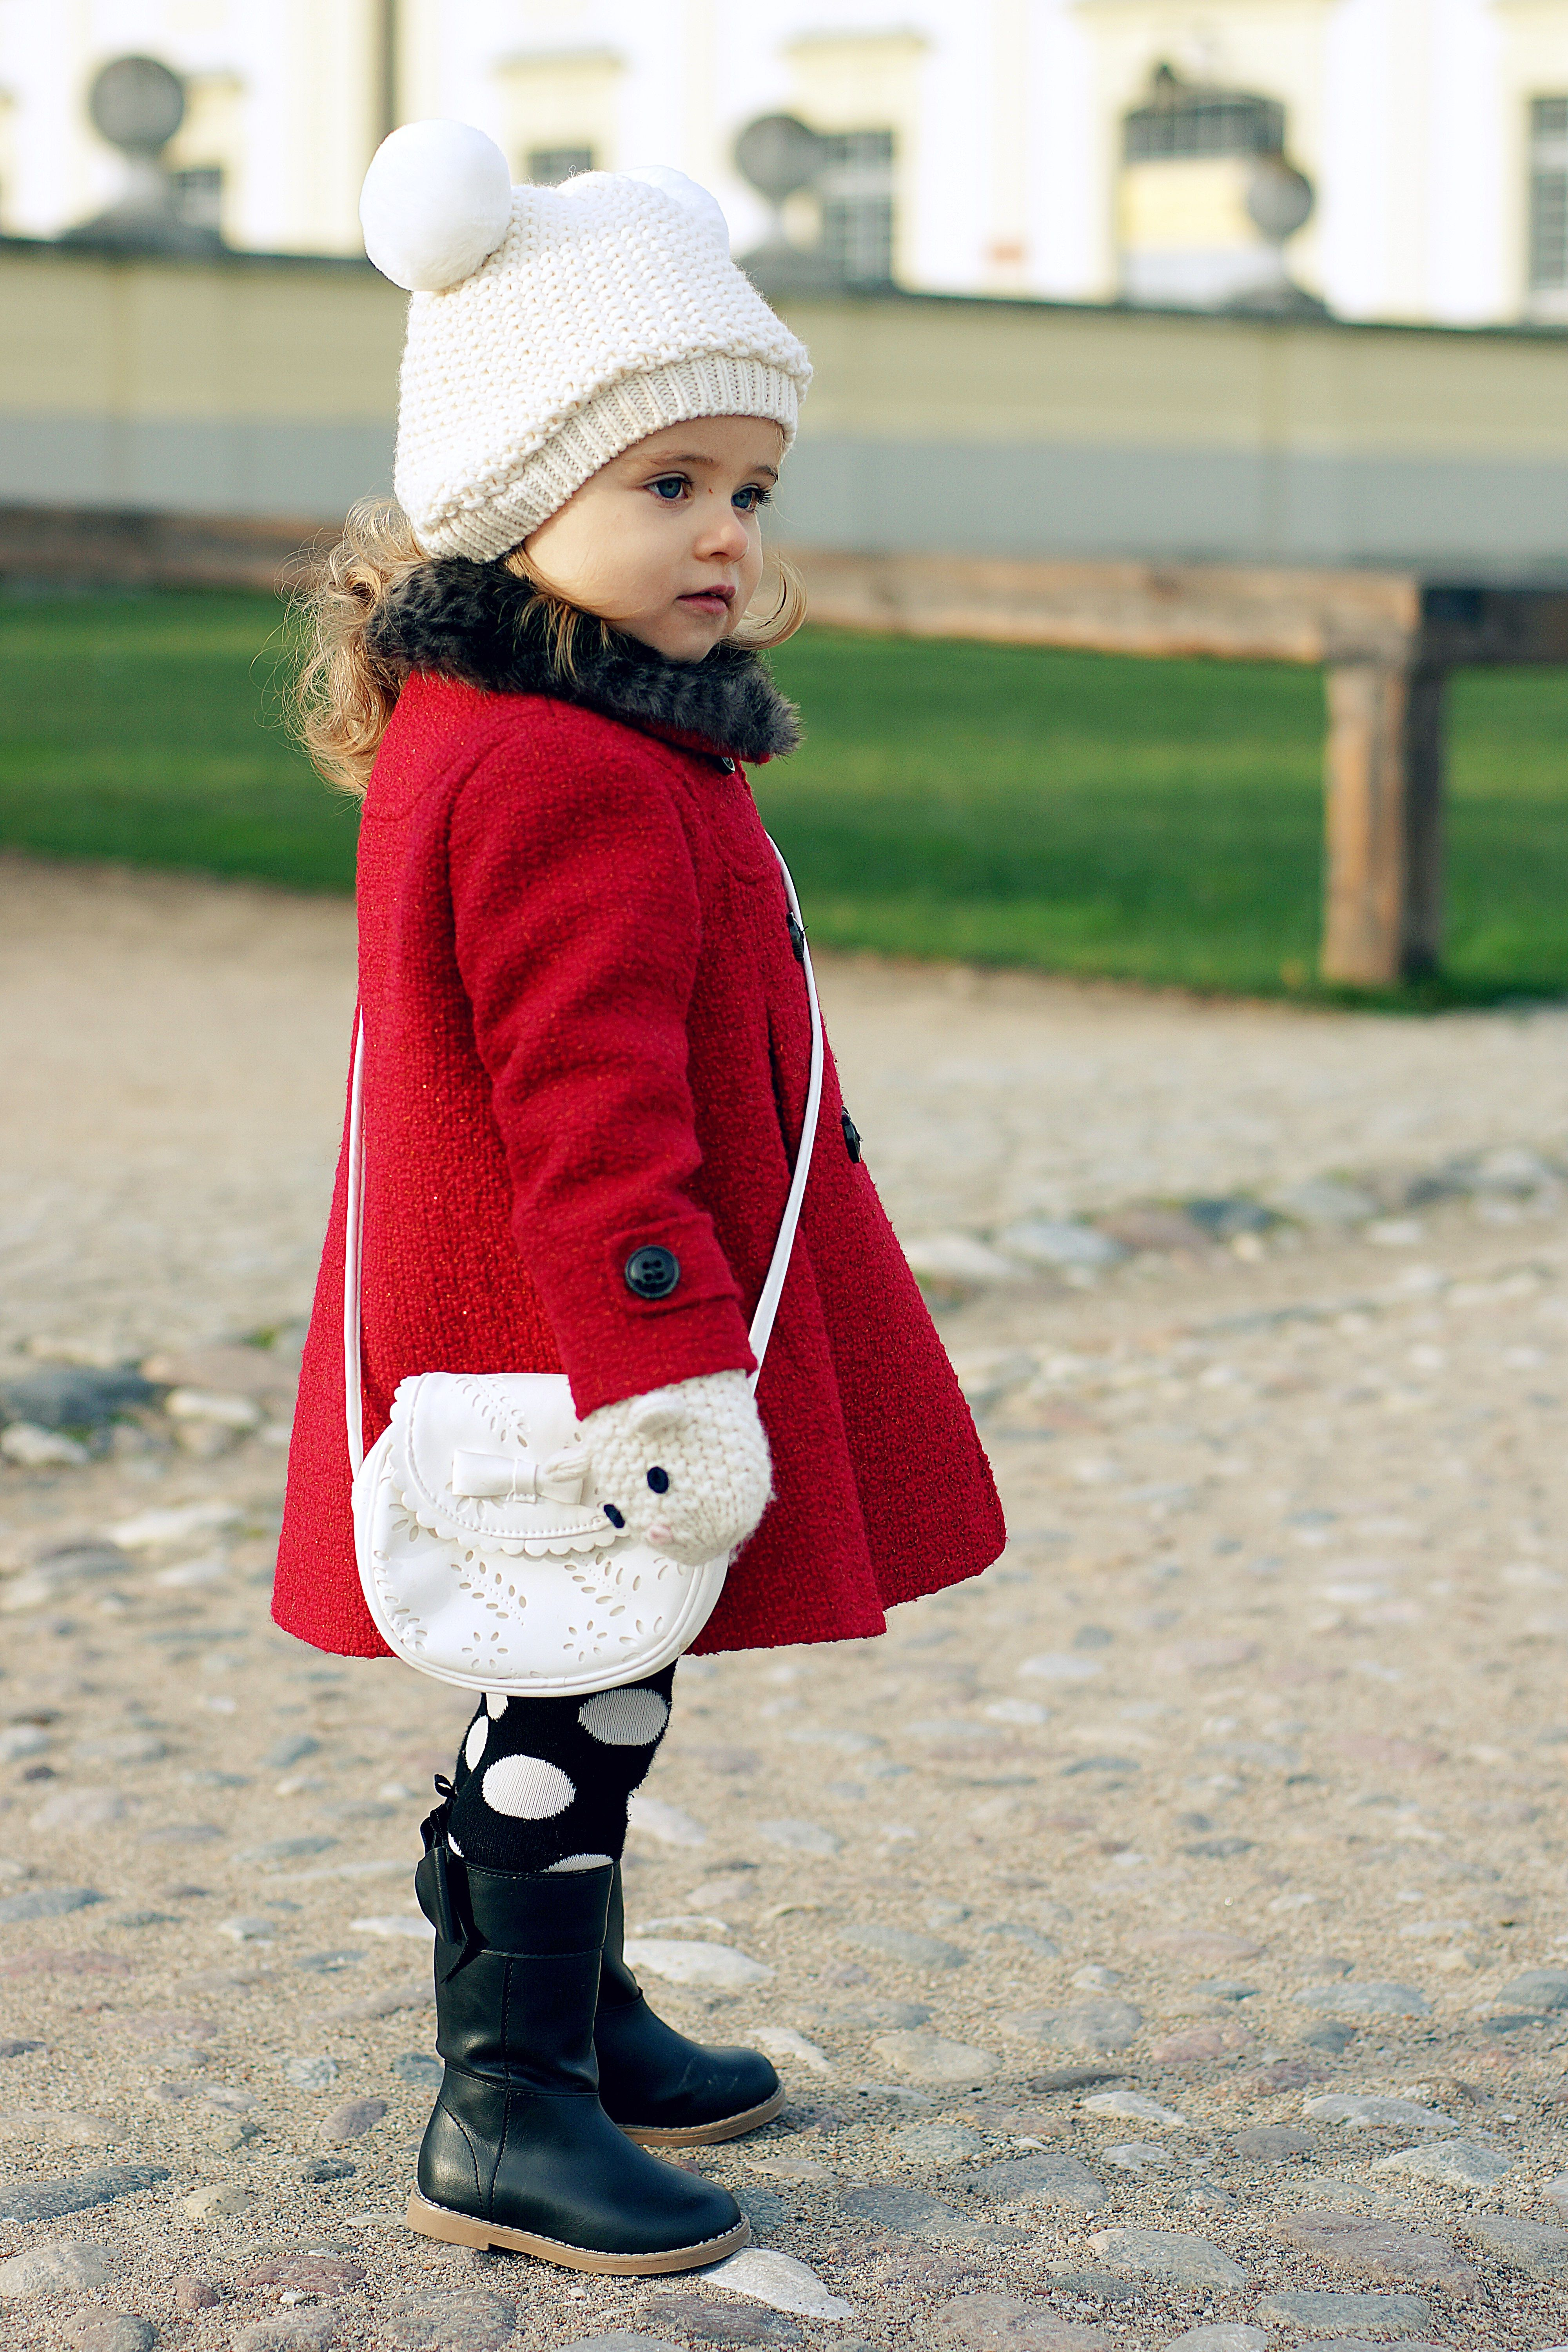 42d4fd905b14 Pompom hat + Red peacoat + polka dotted leggings + boots....adorable ...